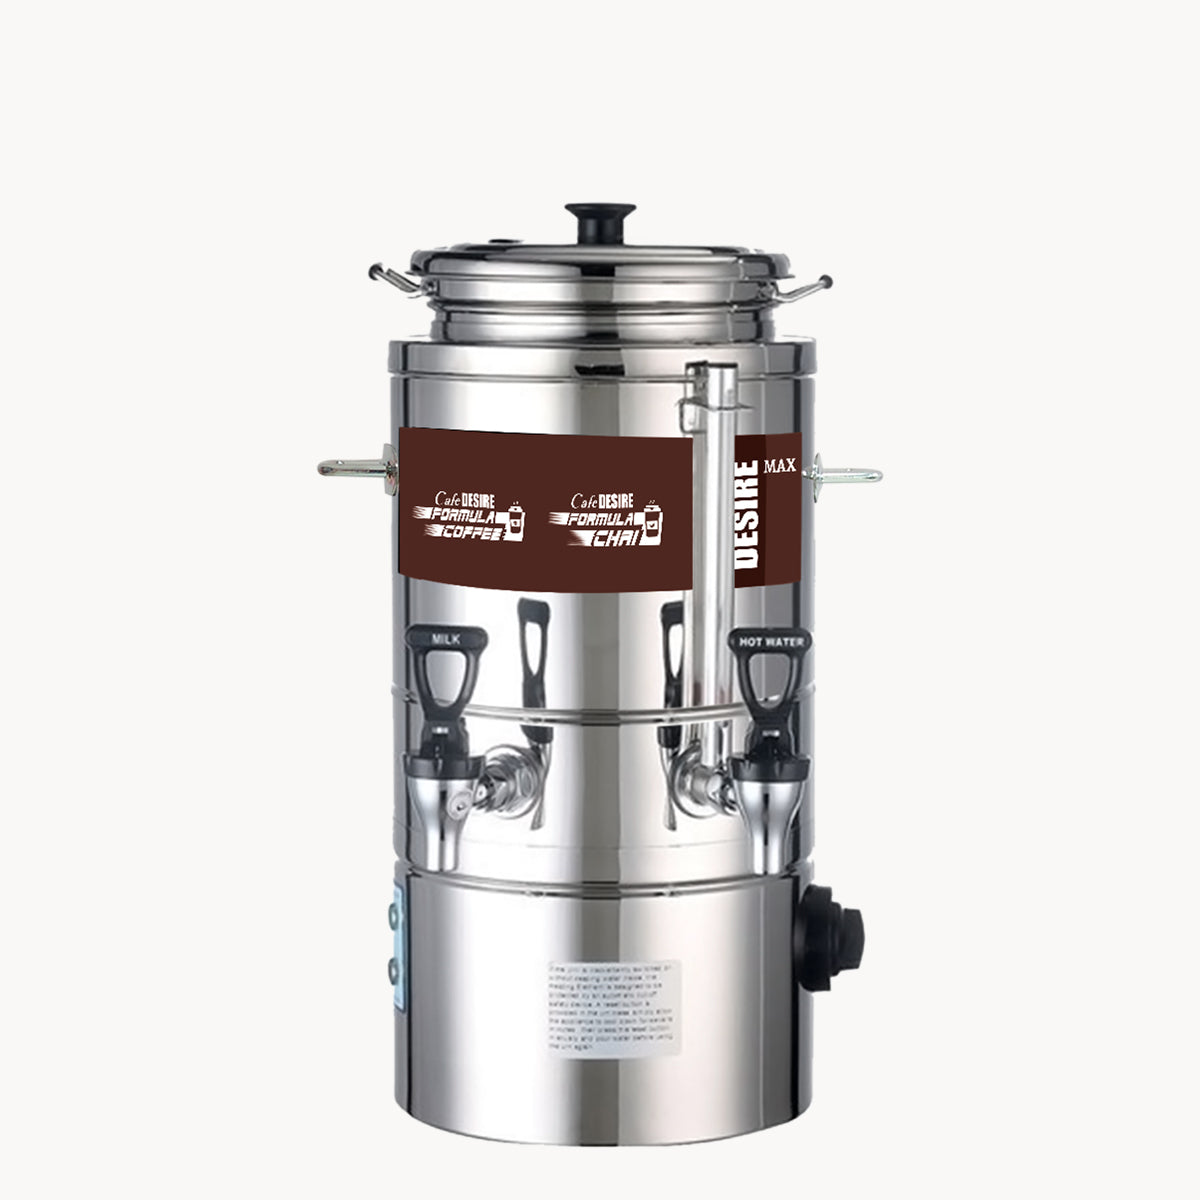 Formula Chai, Formula Coffee Machine - 5 Liters Option